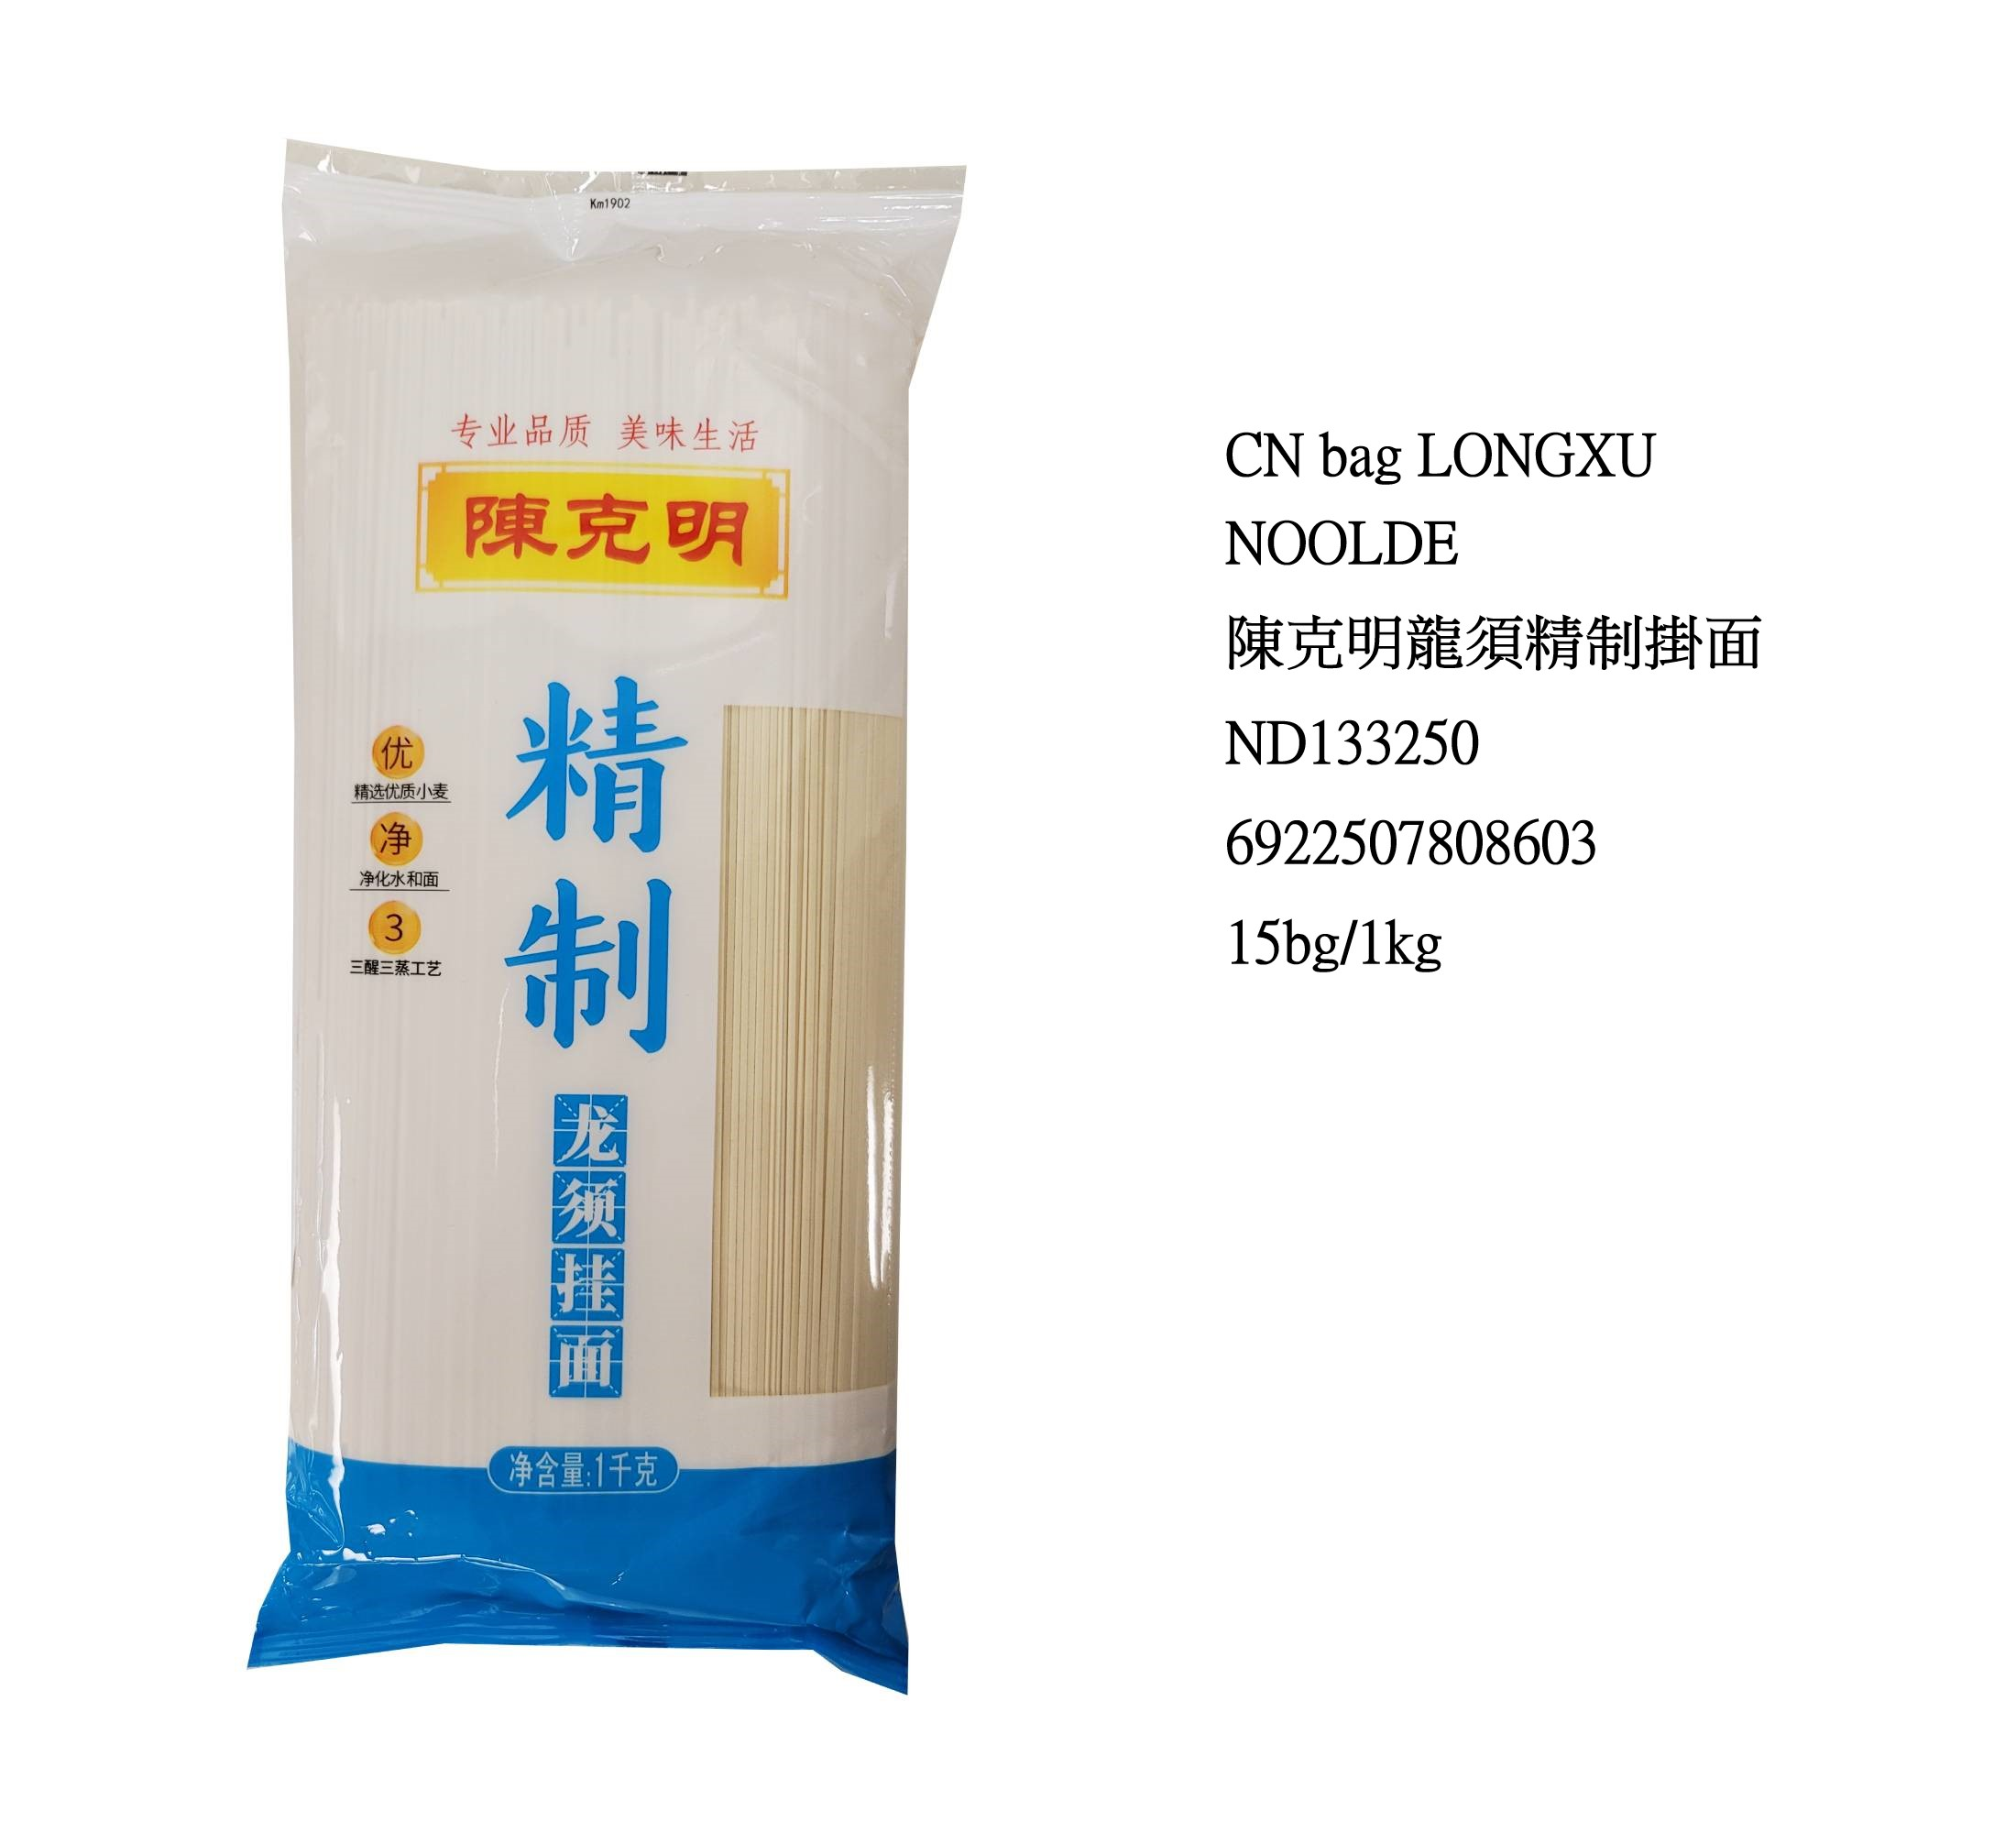 CMK LONGXU NOODLES (BAG) ND133250